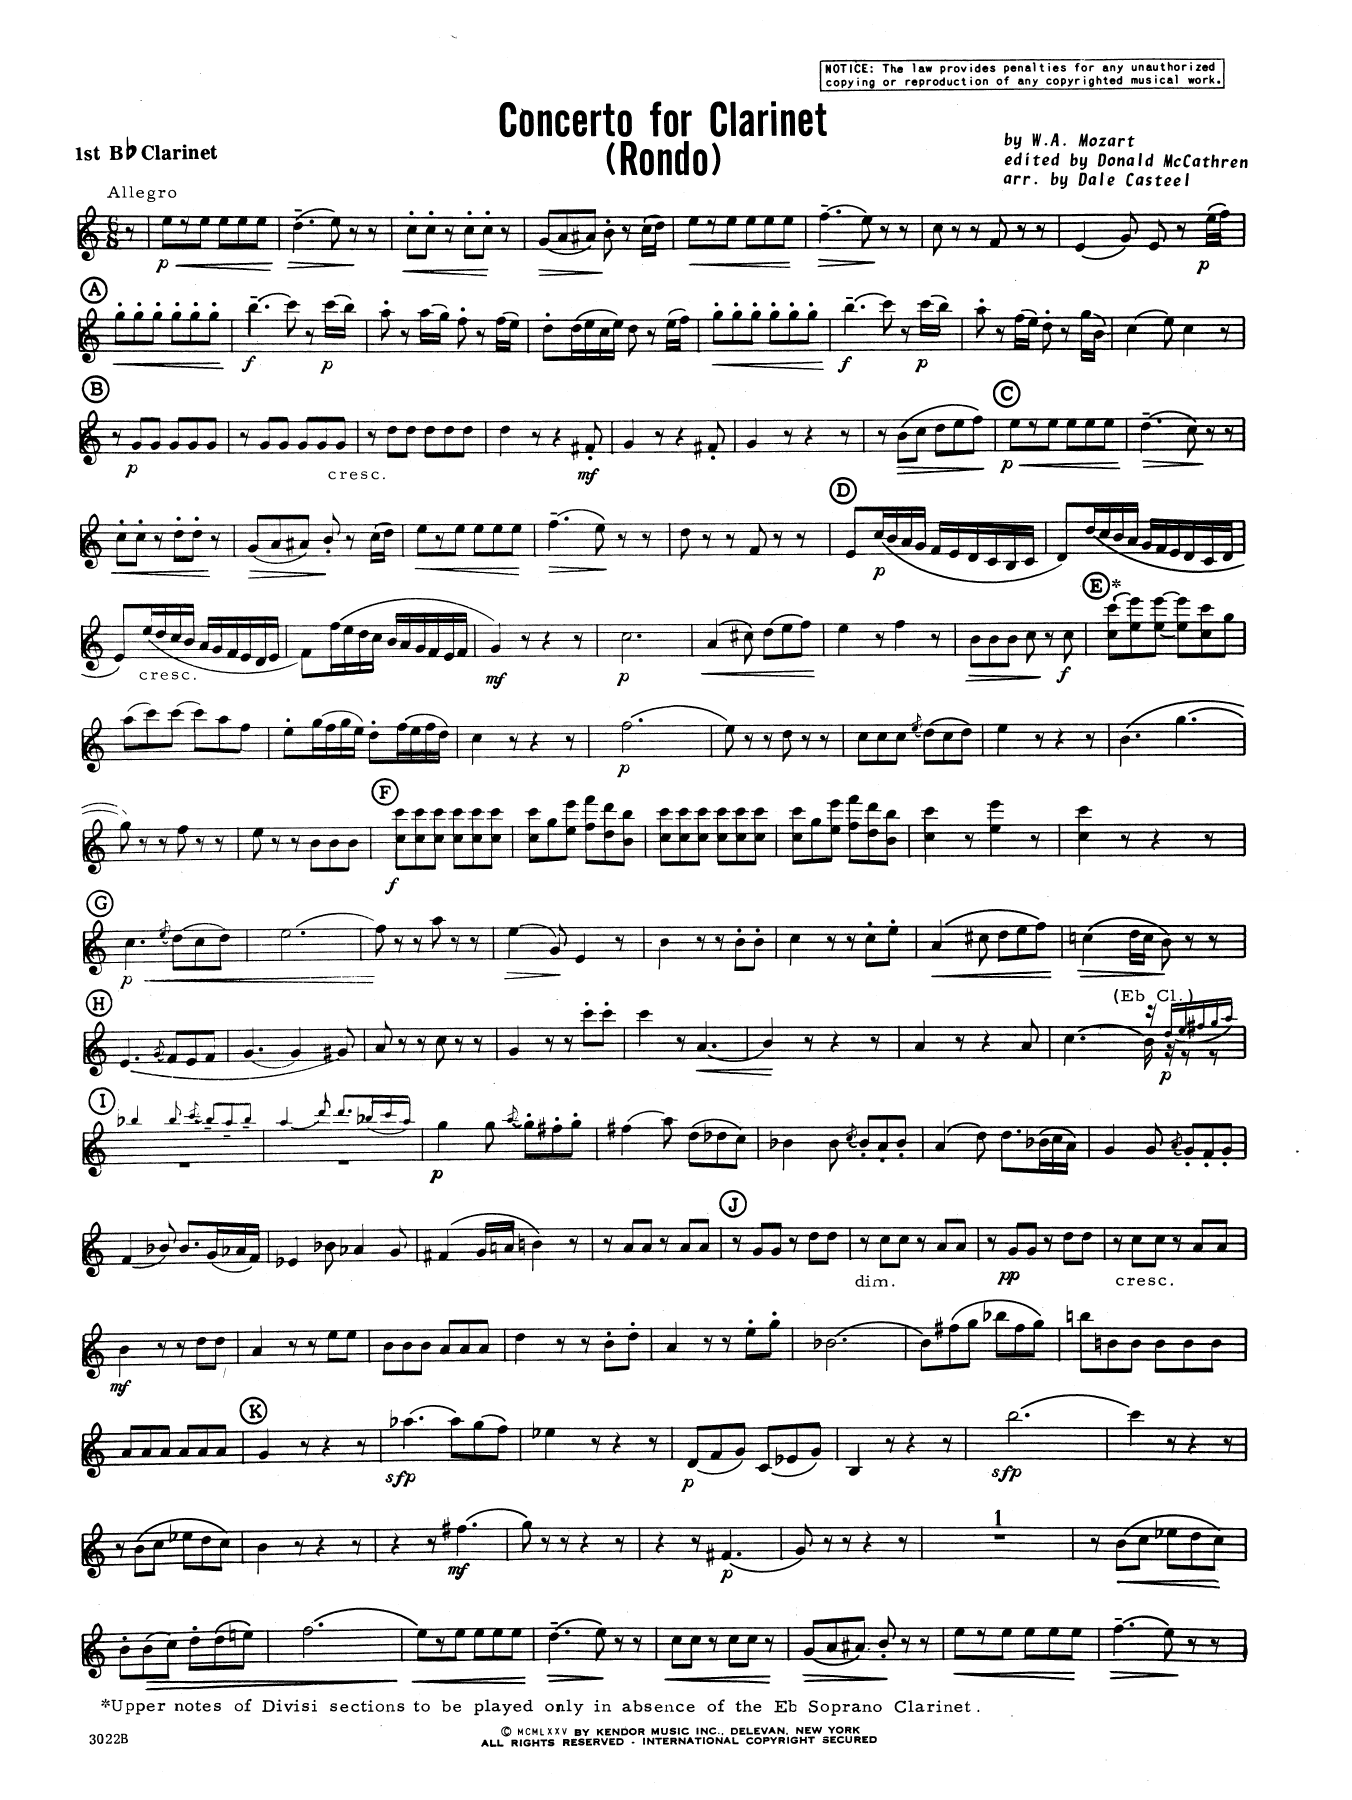 Donald McCathren and Dale Casteel Concerto For Clarinet - Rondo (3rd Movement) - K.622 - 1st Bb Clarinet sheet music preview music notes and score for Concert Band including 3 page(s)